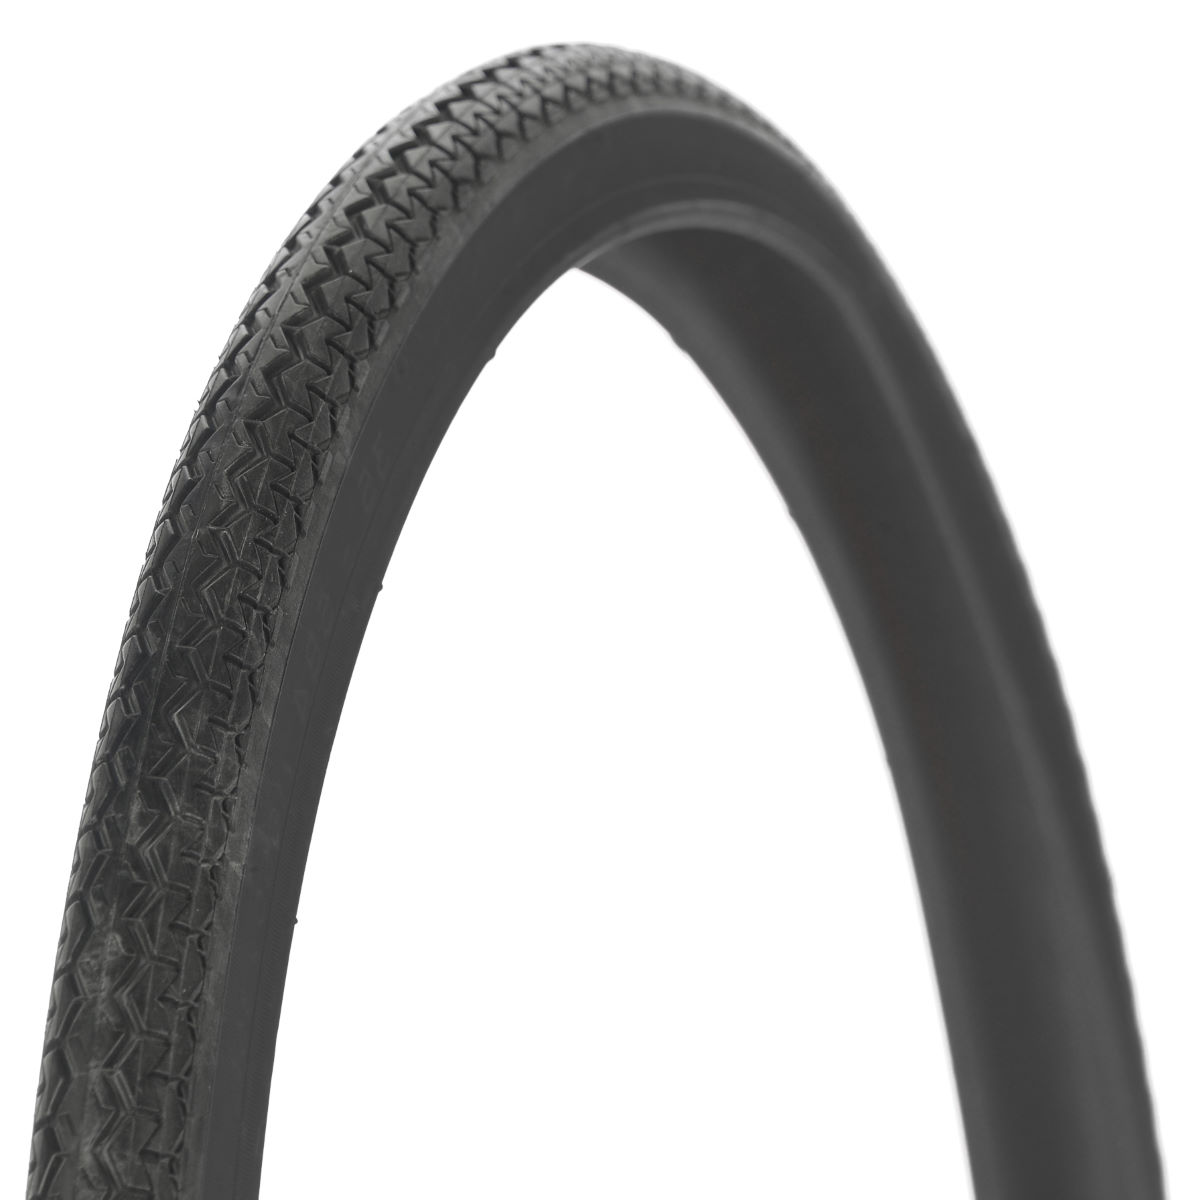 Pneu Michelin World Tour Bike - 26' 1.3/8' Wire Bead Noir Pneus